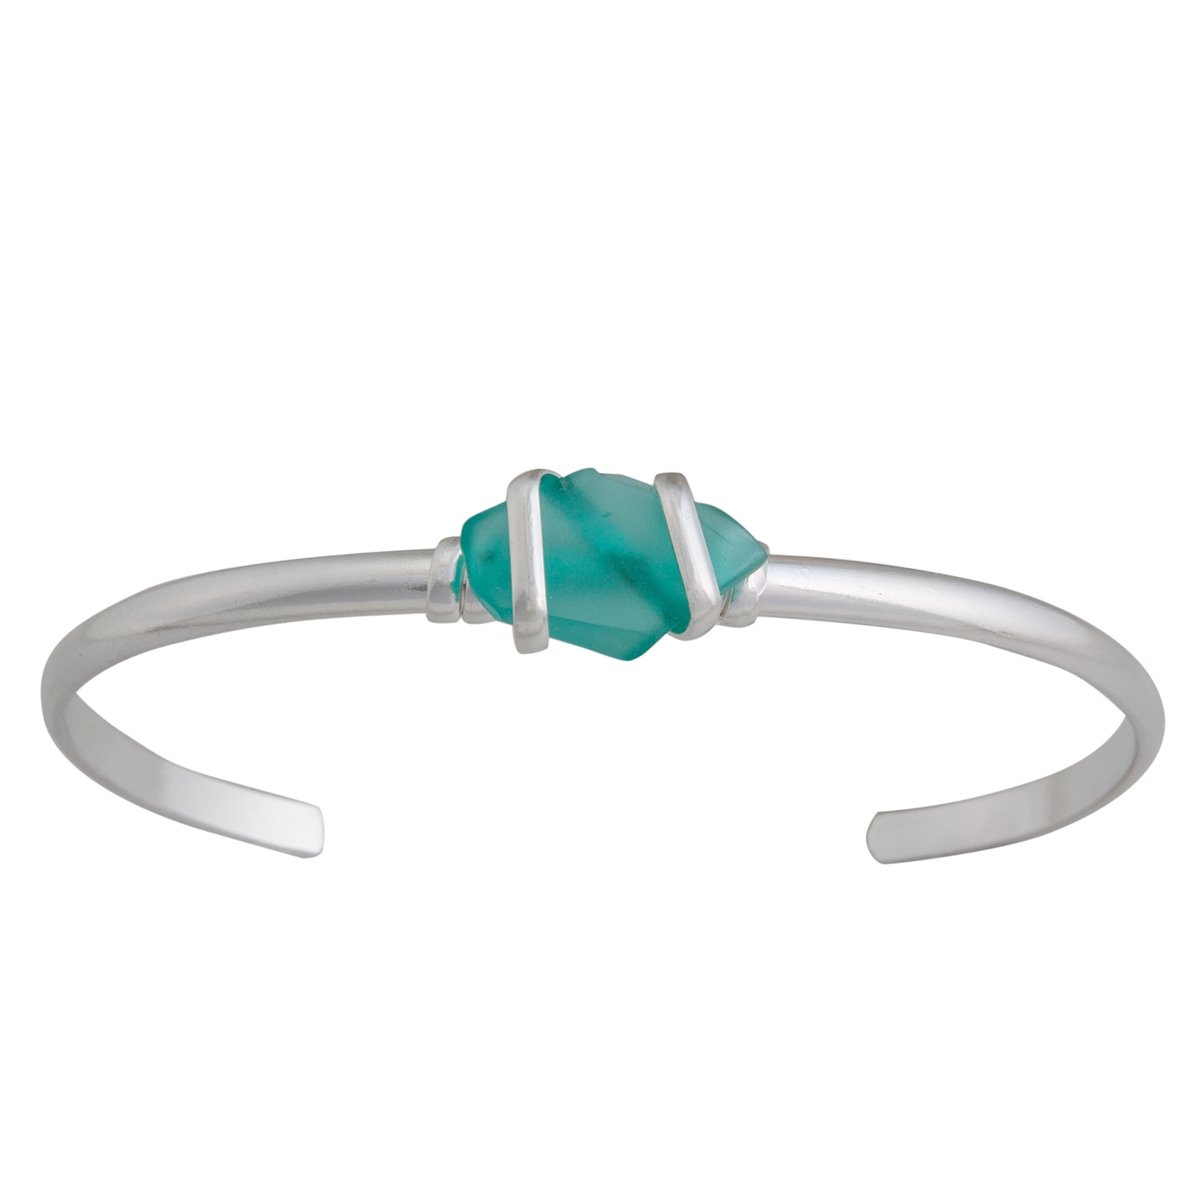 alpaca-recycled-glass-mini-cuff-mint - 1 - Charles Albert Inc